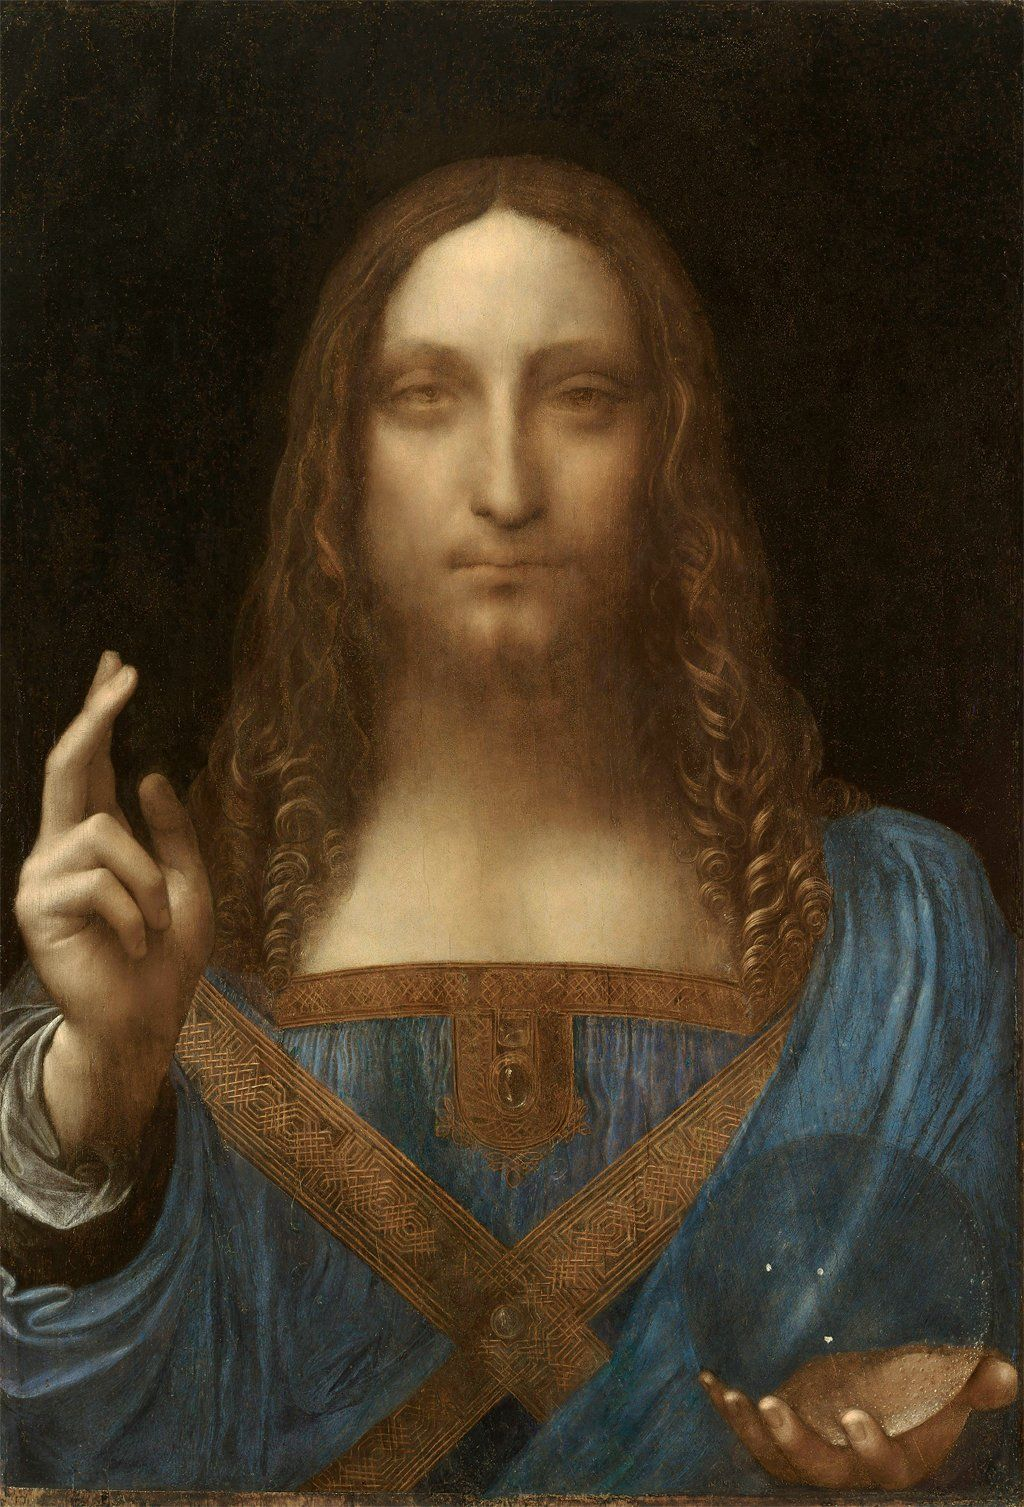 Salvator Mundi, attributed to Leonardo da Vinci